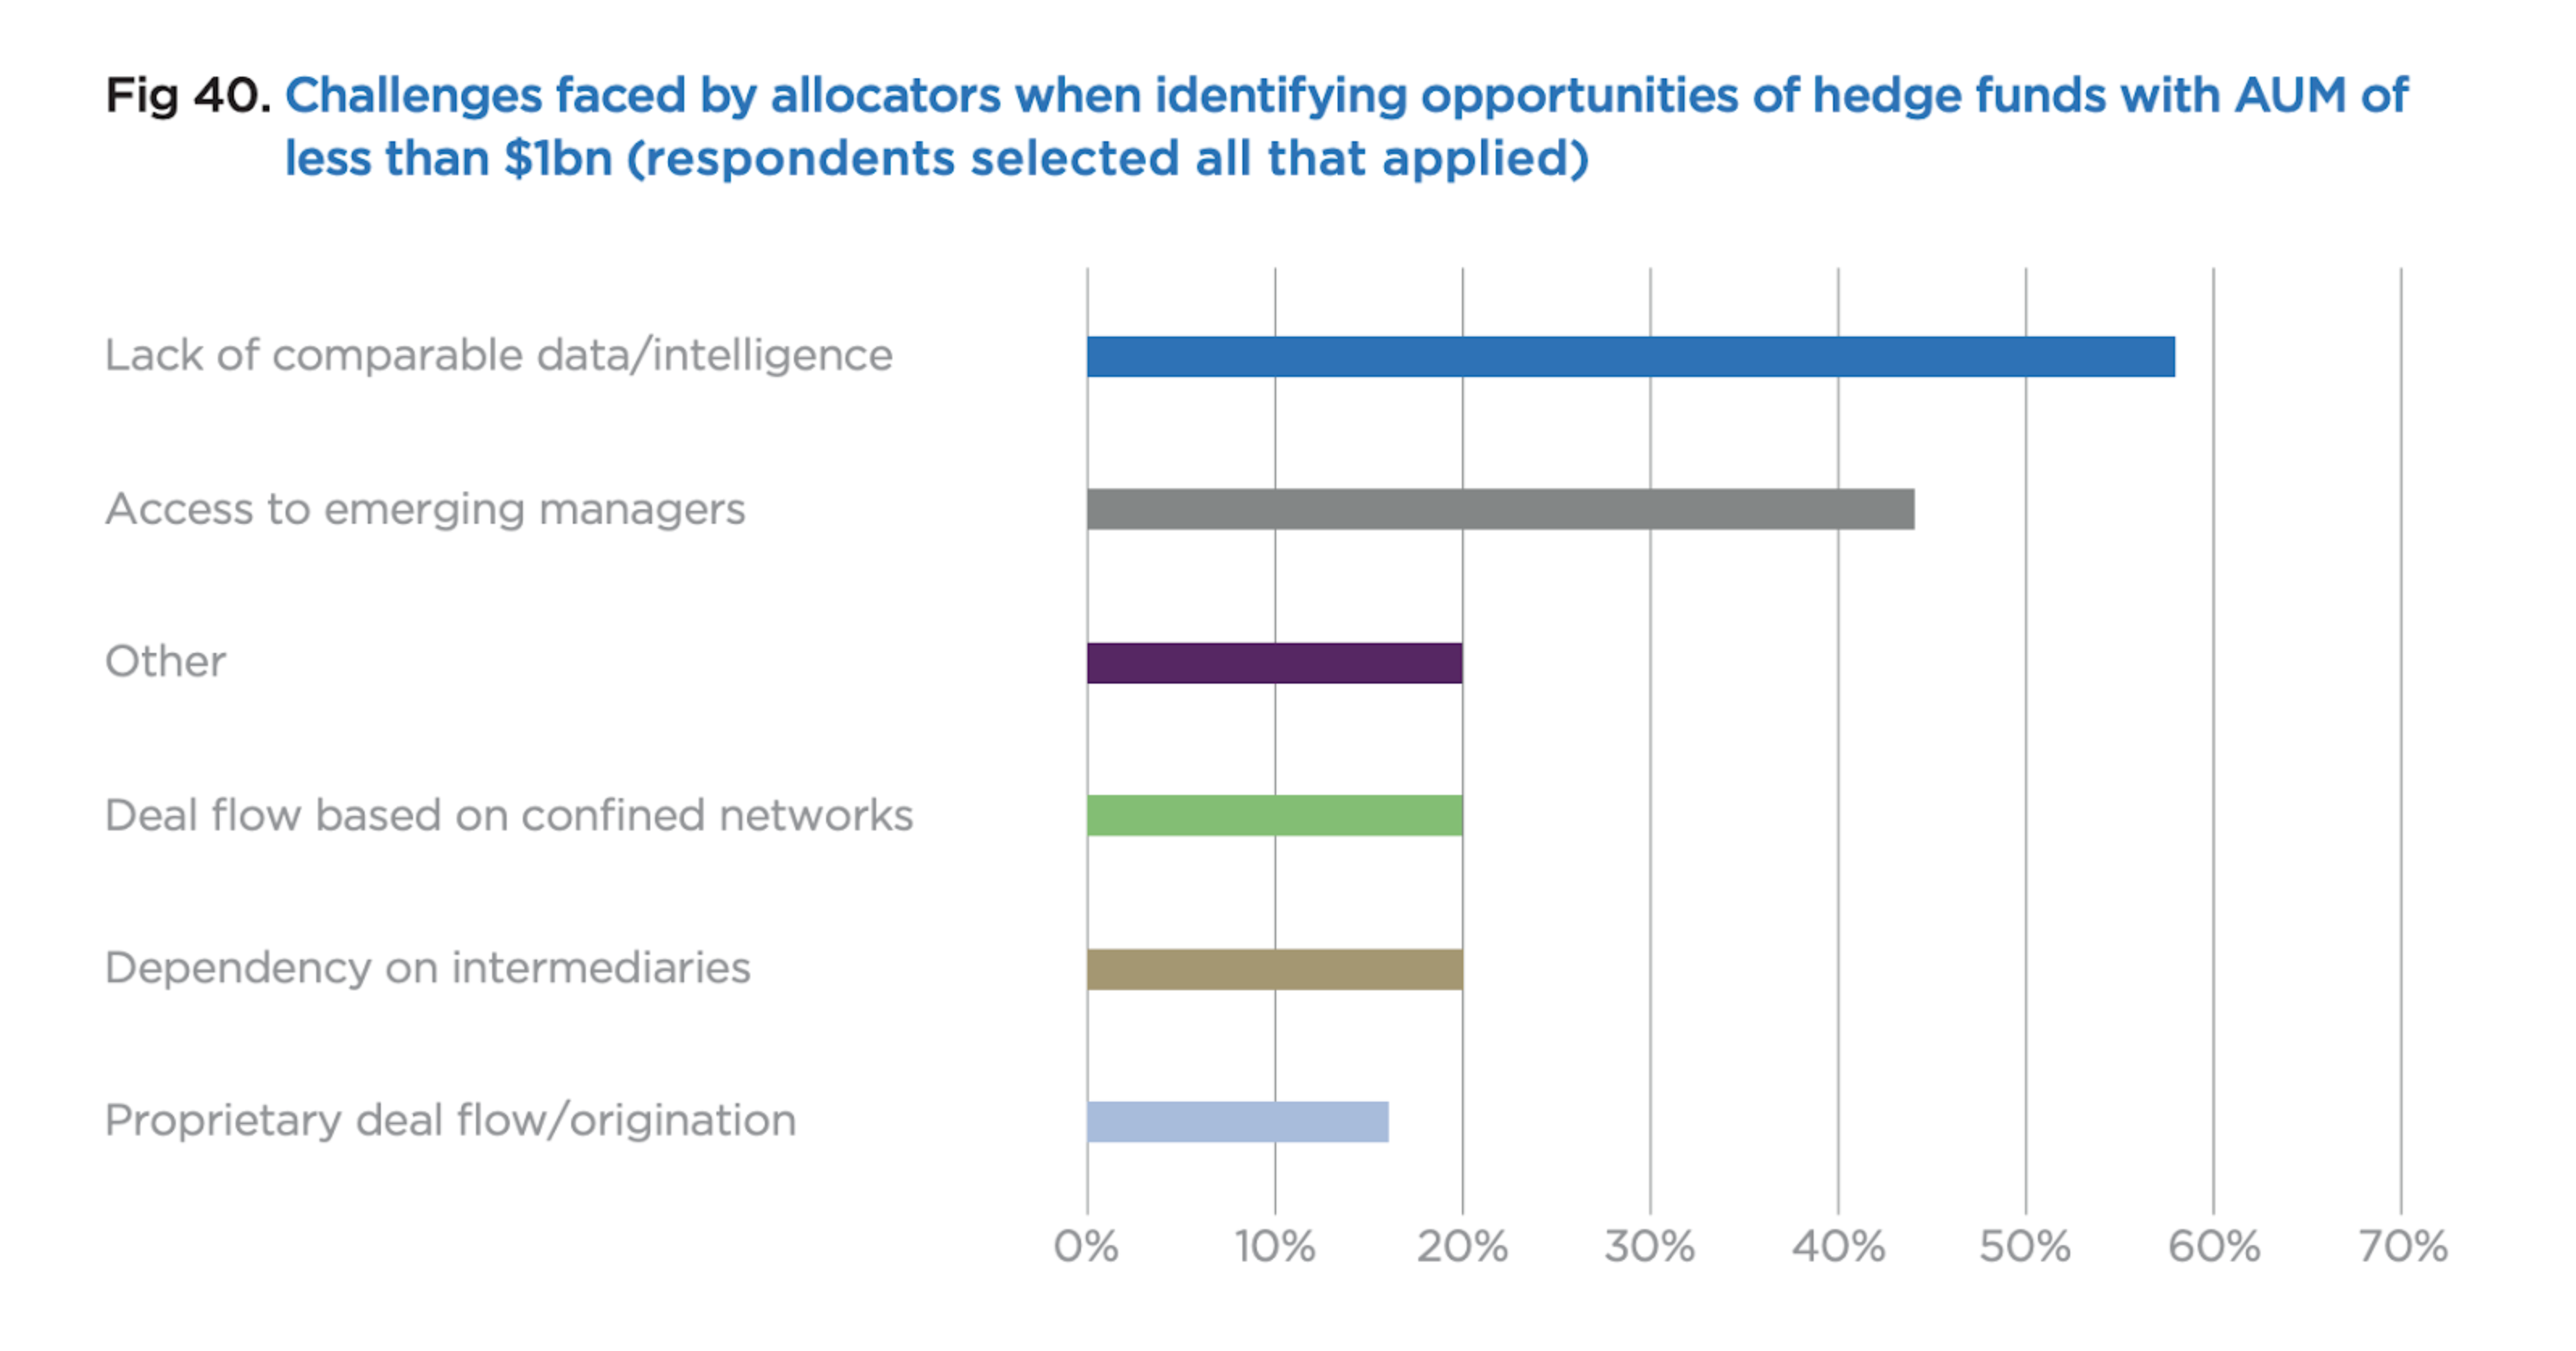 Challenges faced by allocators when identifying opportunities of hedge funds with AUM of less than $1bn